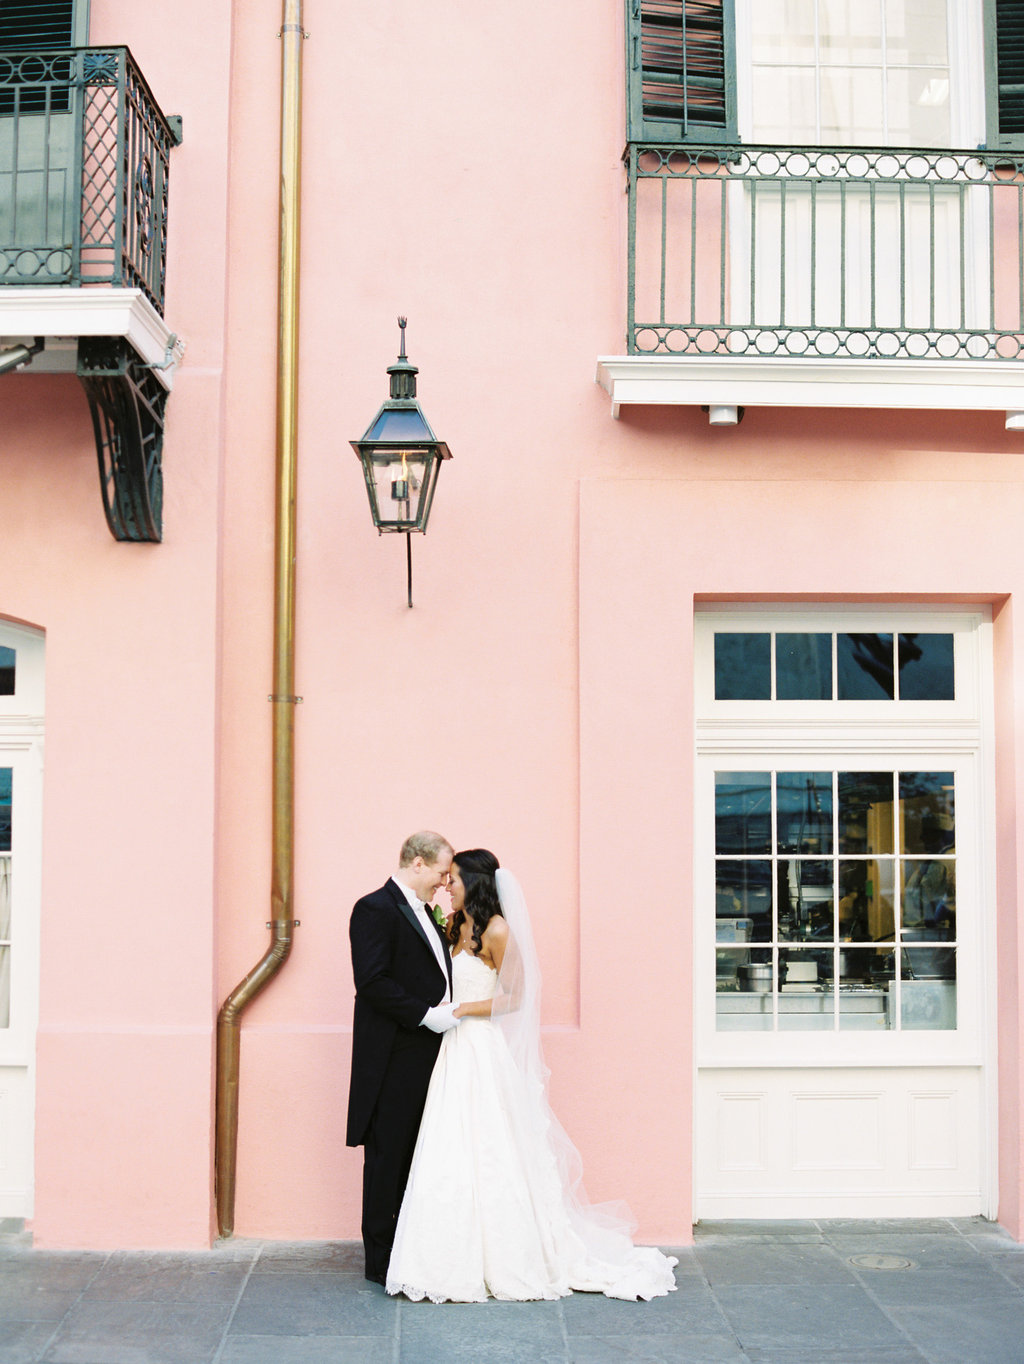 Bride and groom looking at each other in front of the pink Brennan's wall in New Orleans Louisiana